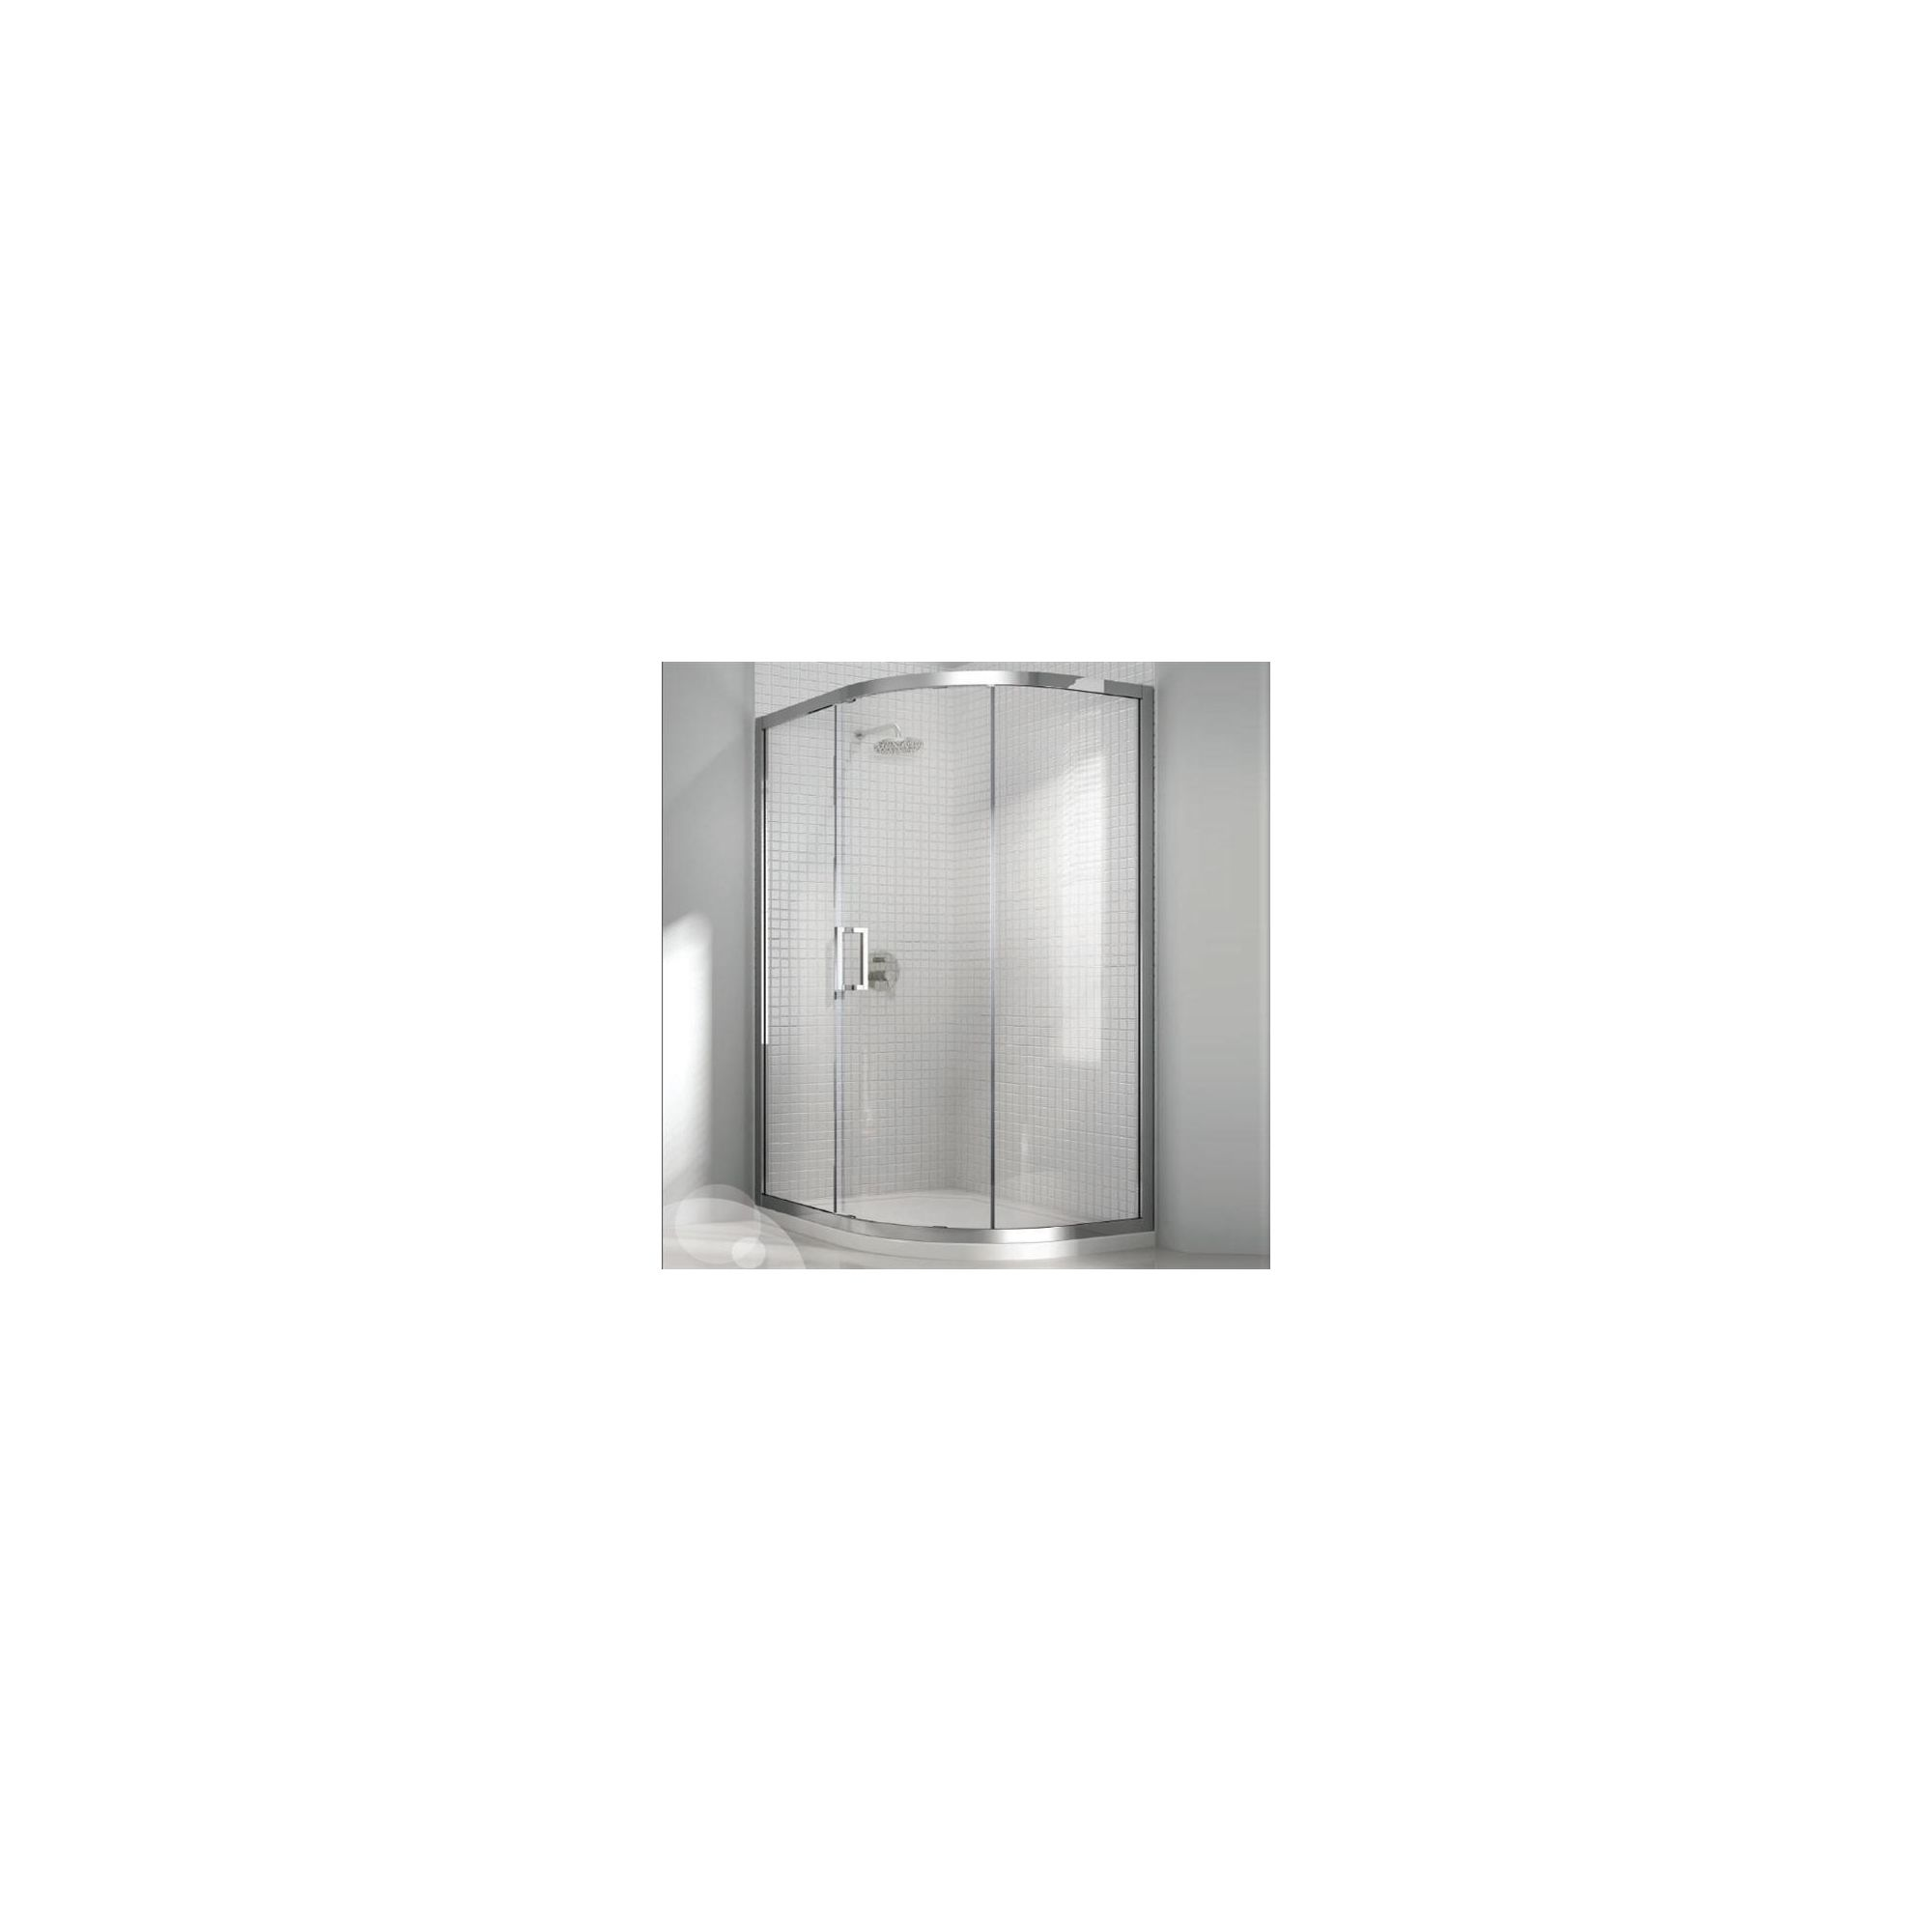 Merlyn Vivid Eight Offset Quadrant Shower Enclosure, 1200mm x 800mm, Right Handed, Low Profile Tray, 8mm Glass at Tesco Direct